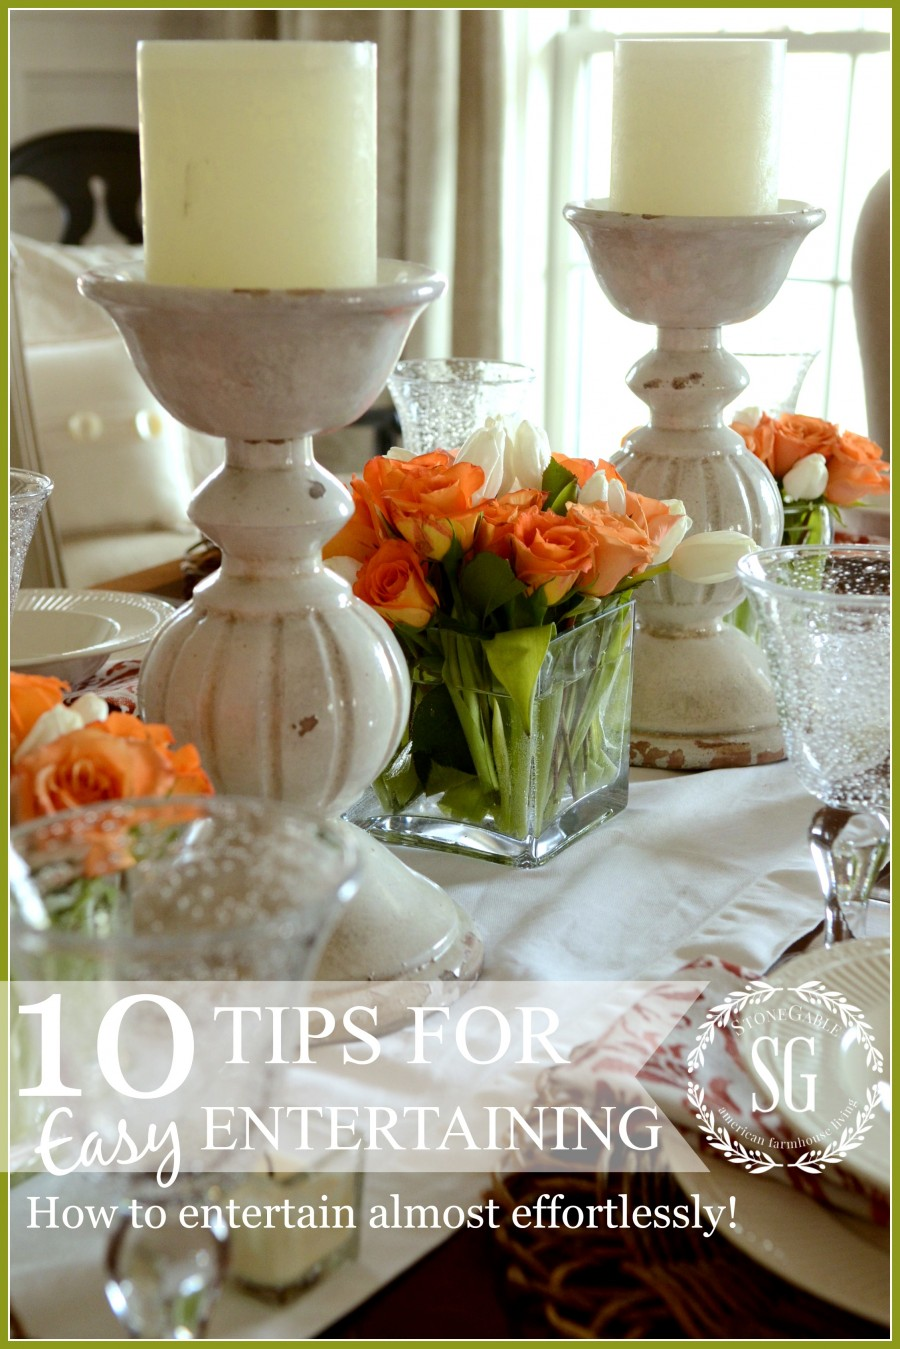 10 TIPS FOR EASY ENTERTAINING… YOU CAN DO THIS!